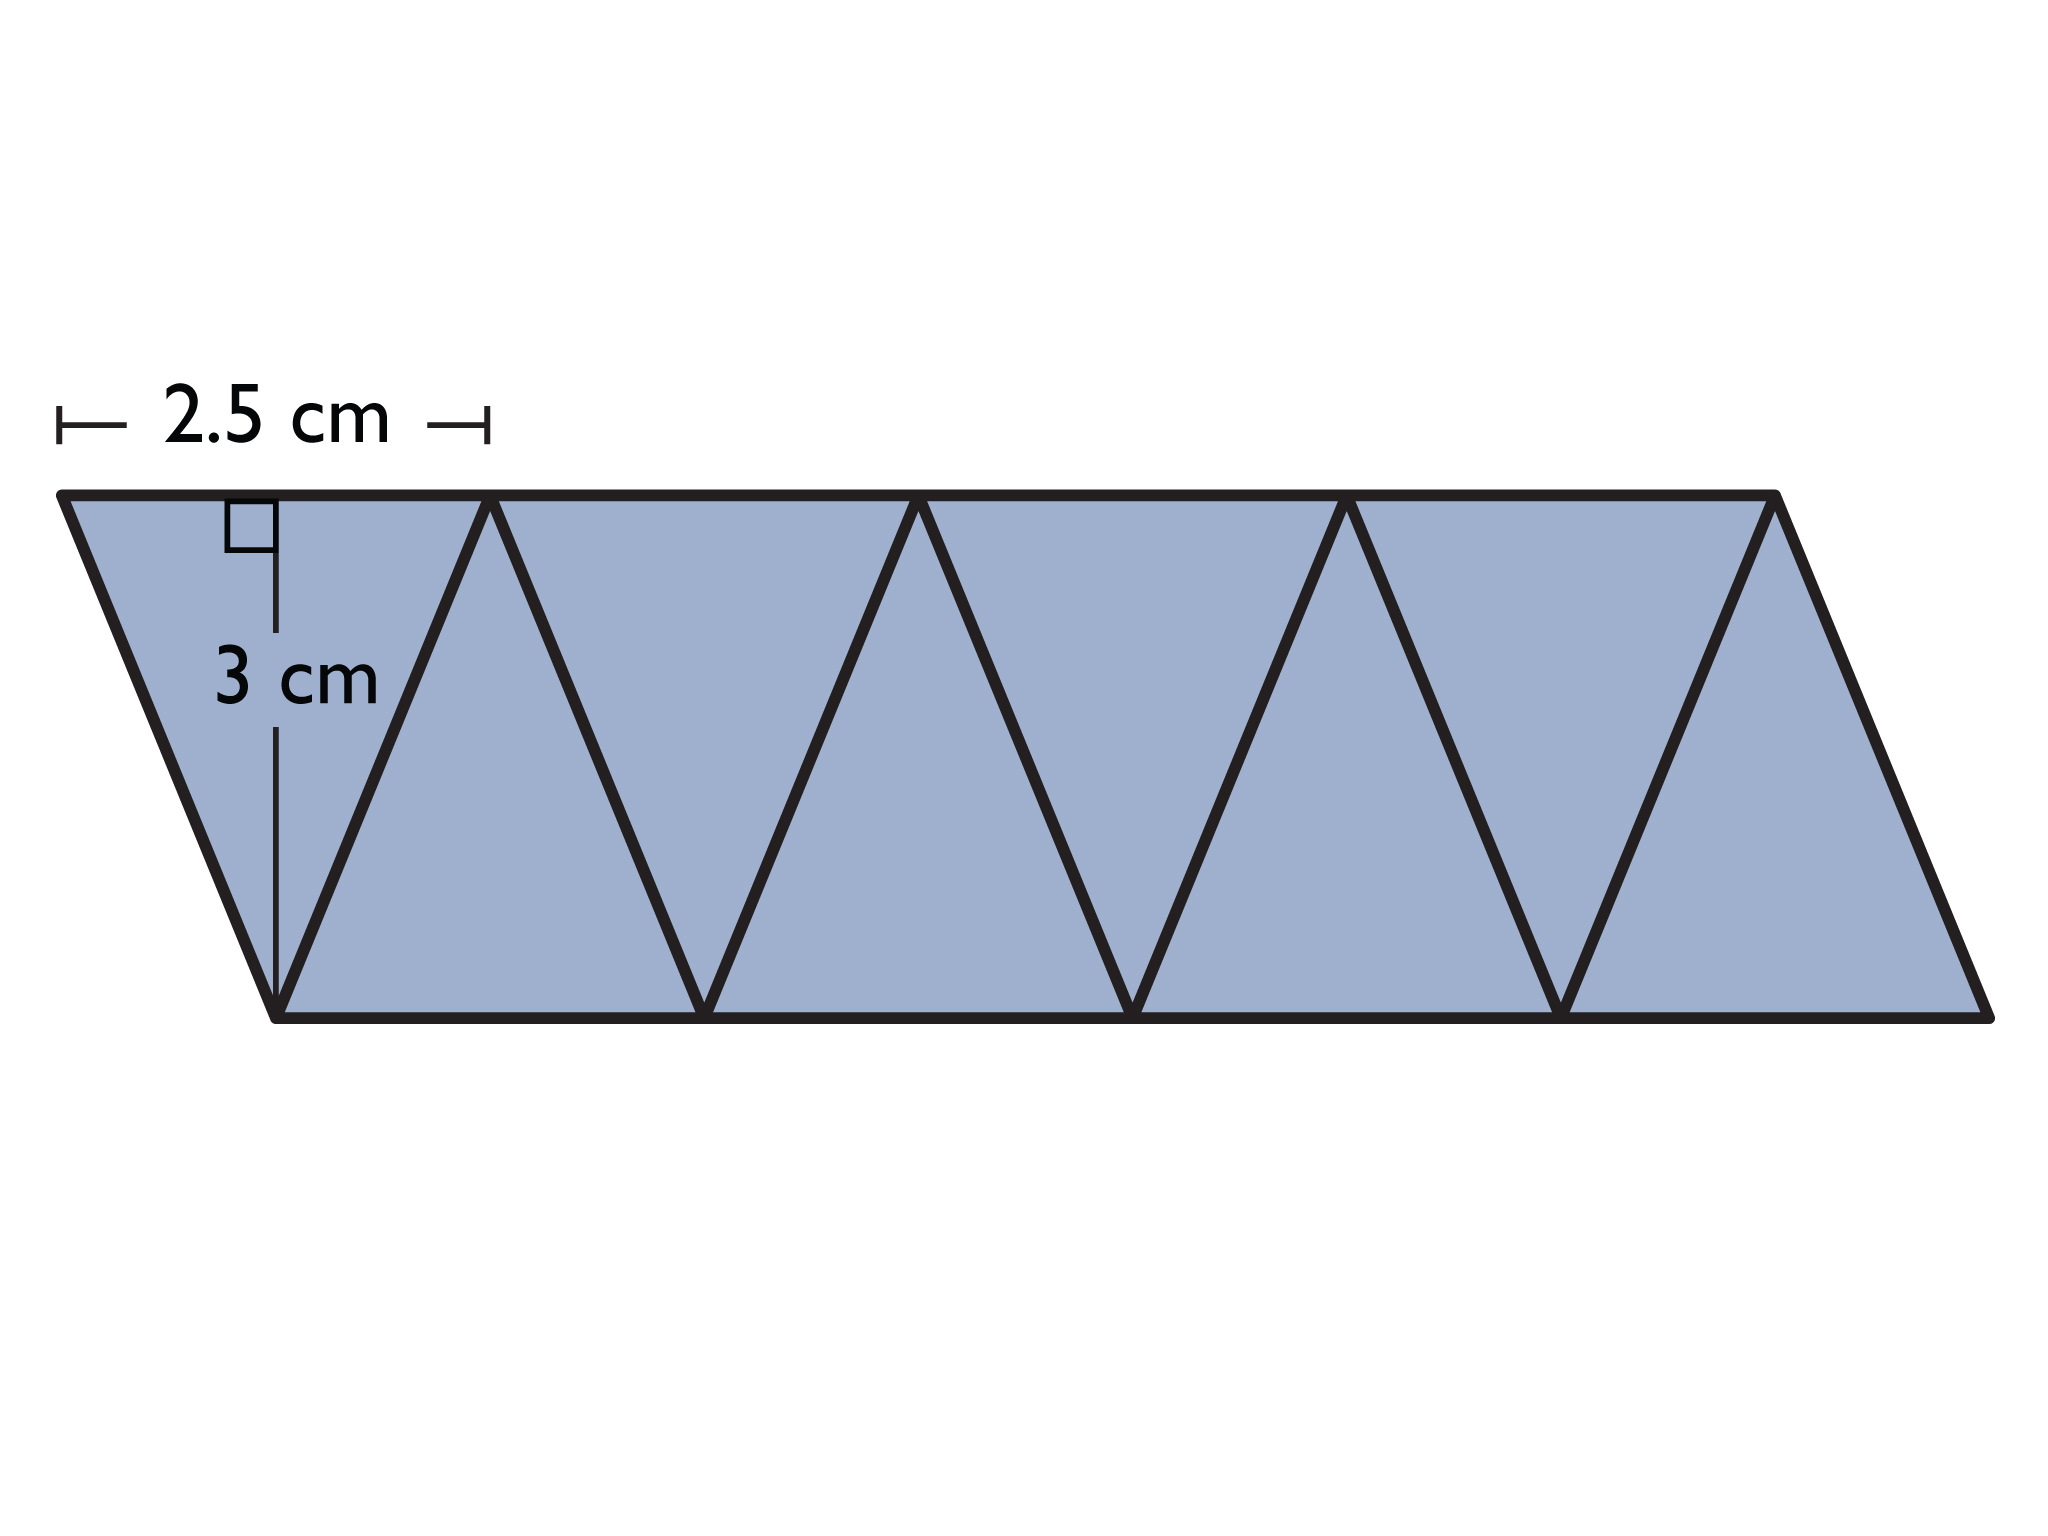 The Area Of Each Polygon Can Be Found By Multiplying The Area Of The  Triangle By The Number Of Sides: